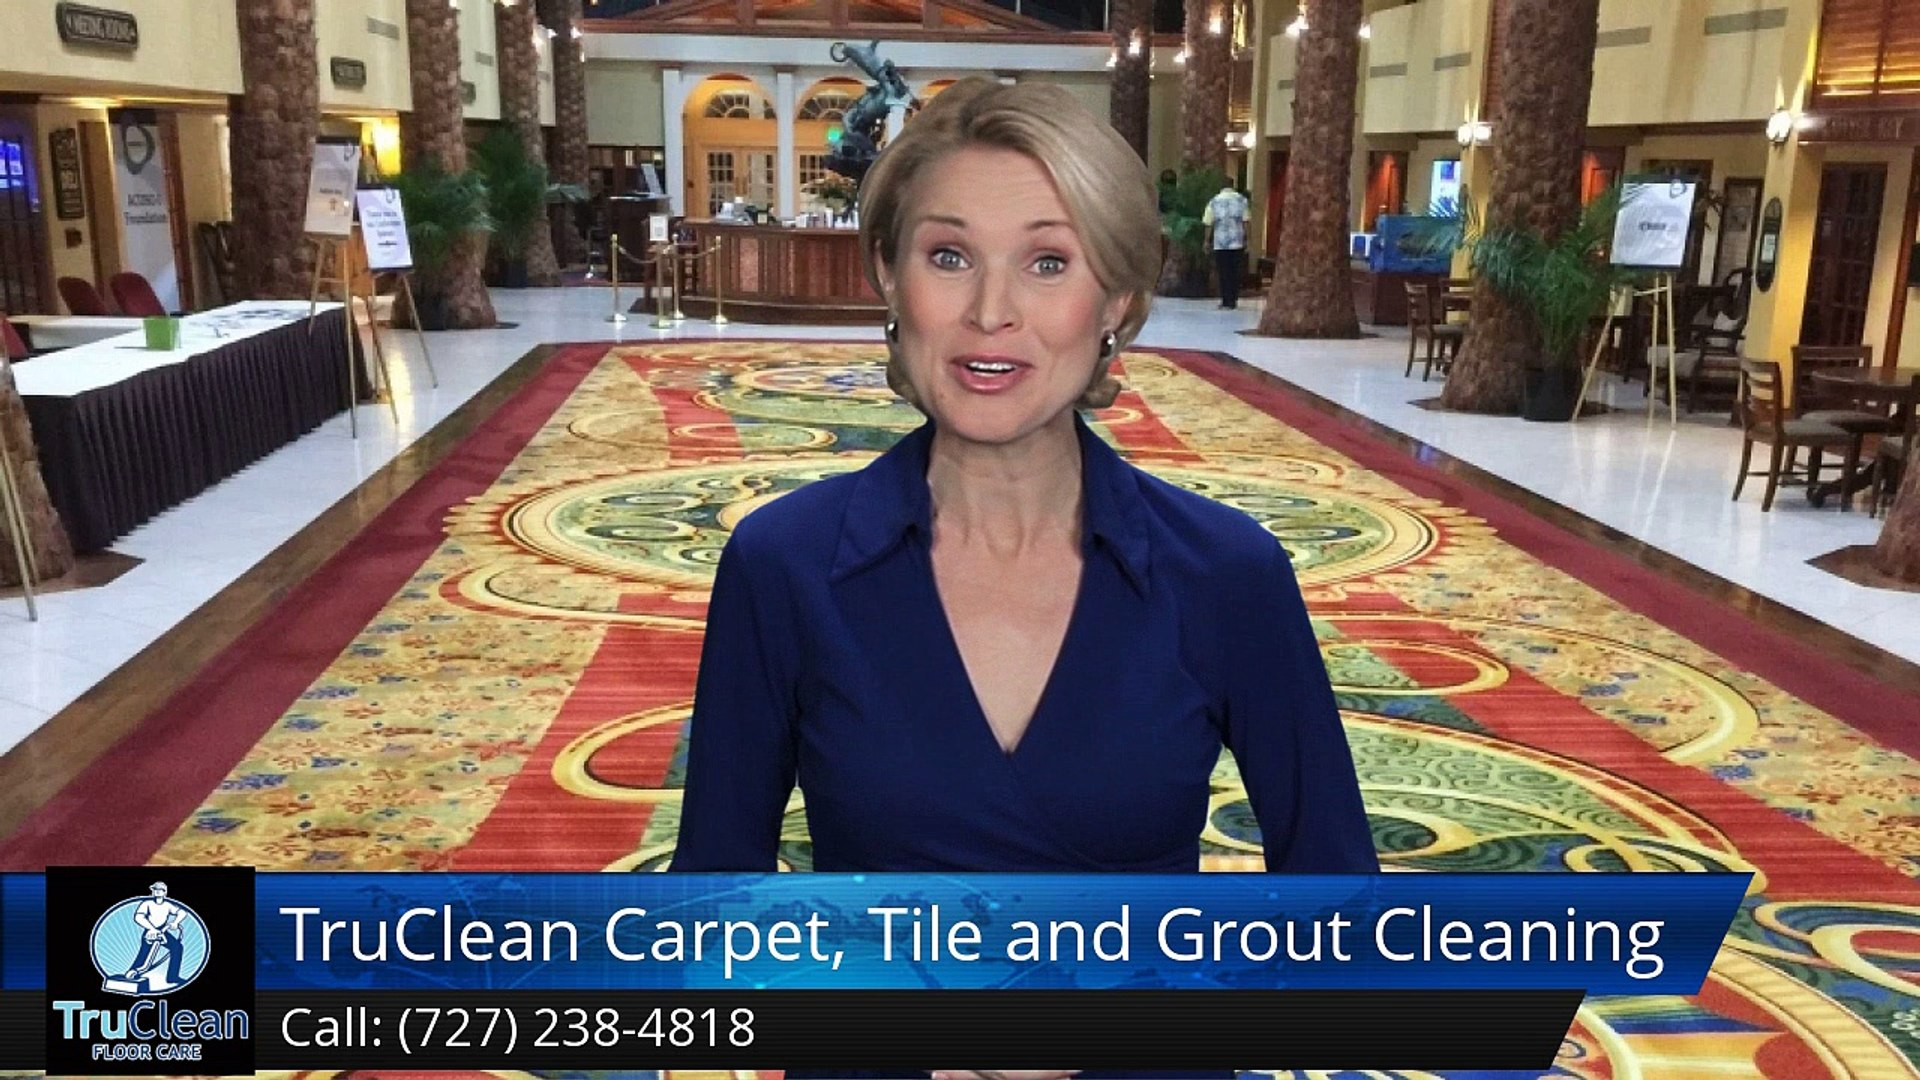 Clearwater FL Tile & Grout Cleaning Reviews, TruClean Floor Care Clearwater FL, Commercial Carpe